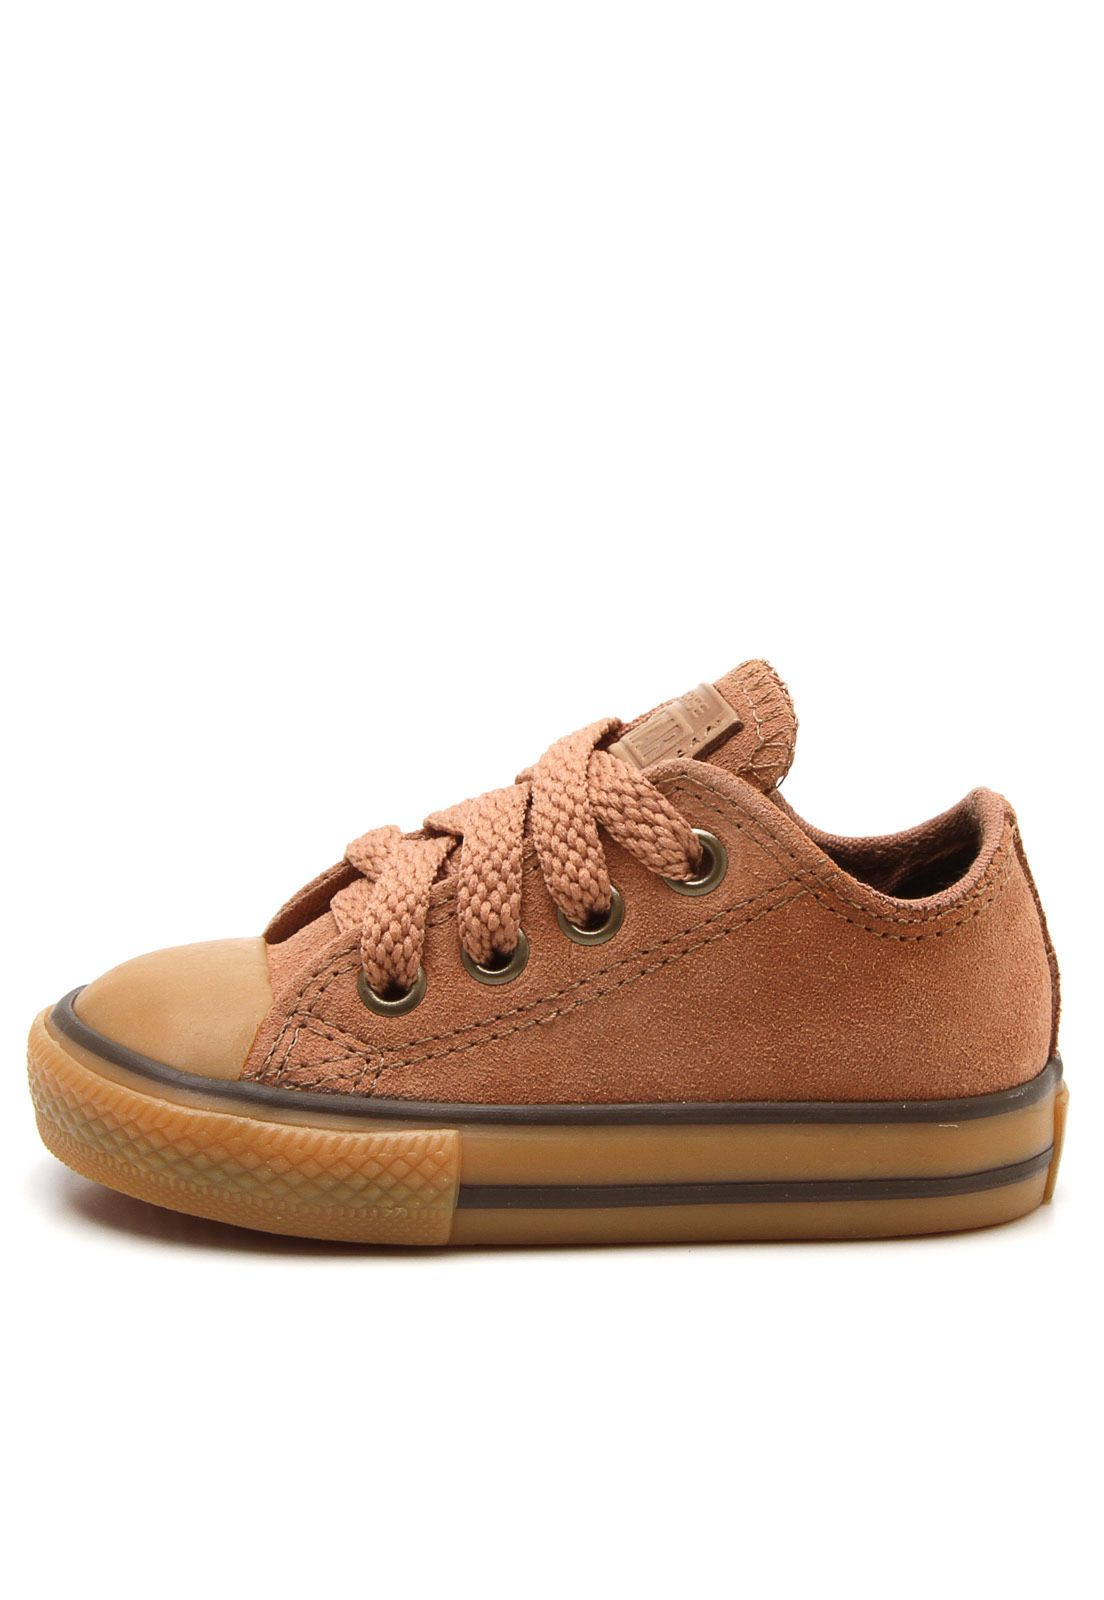 617f59a6d7 Tênis Converse Chuck Taylor All Star Bege | ^Cool and Fashionable ...